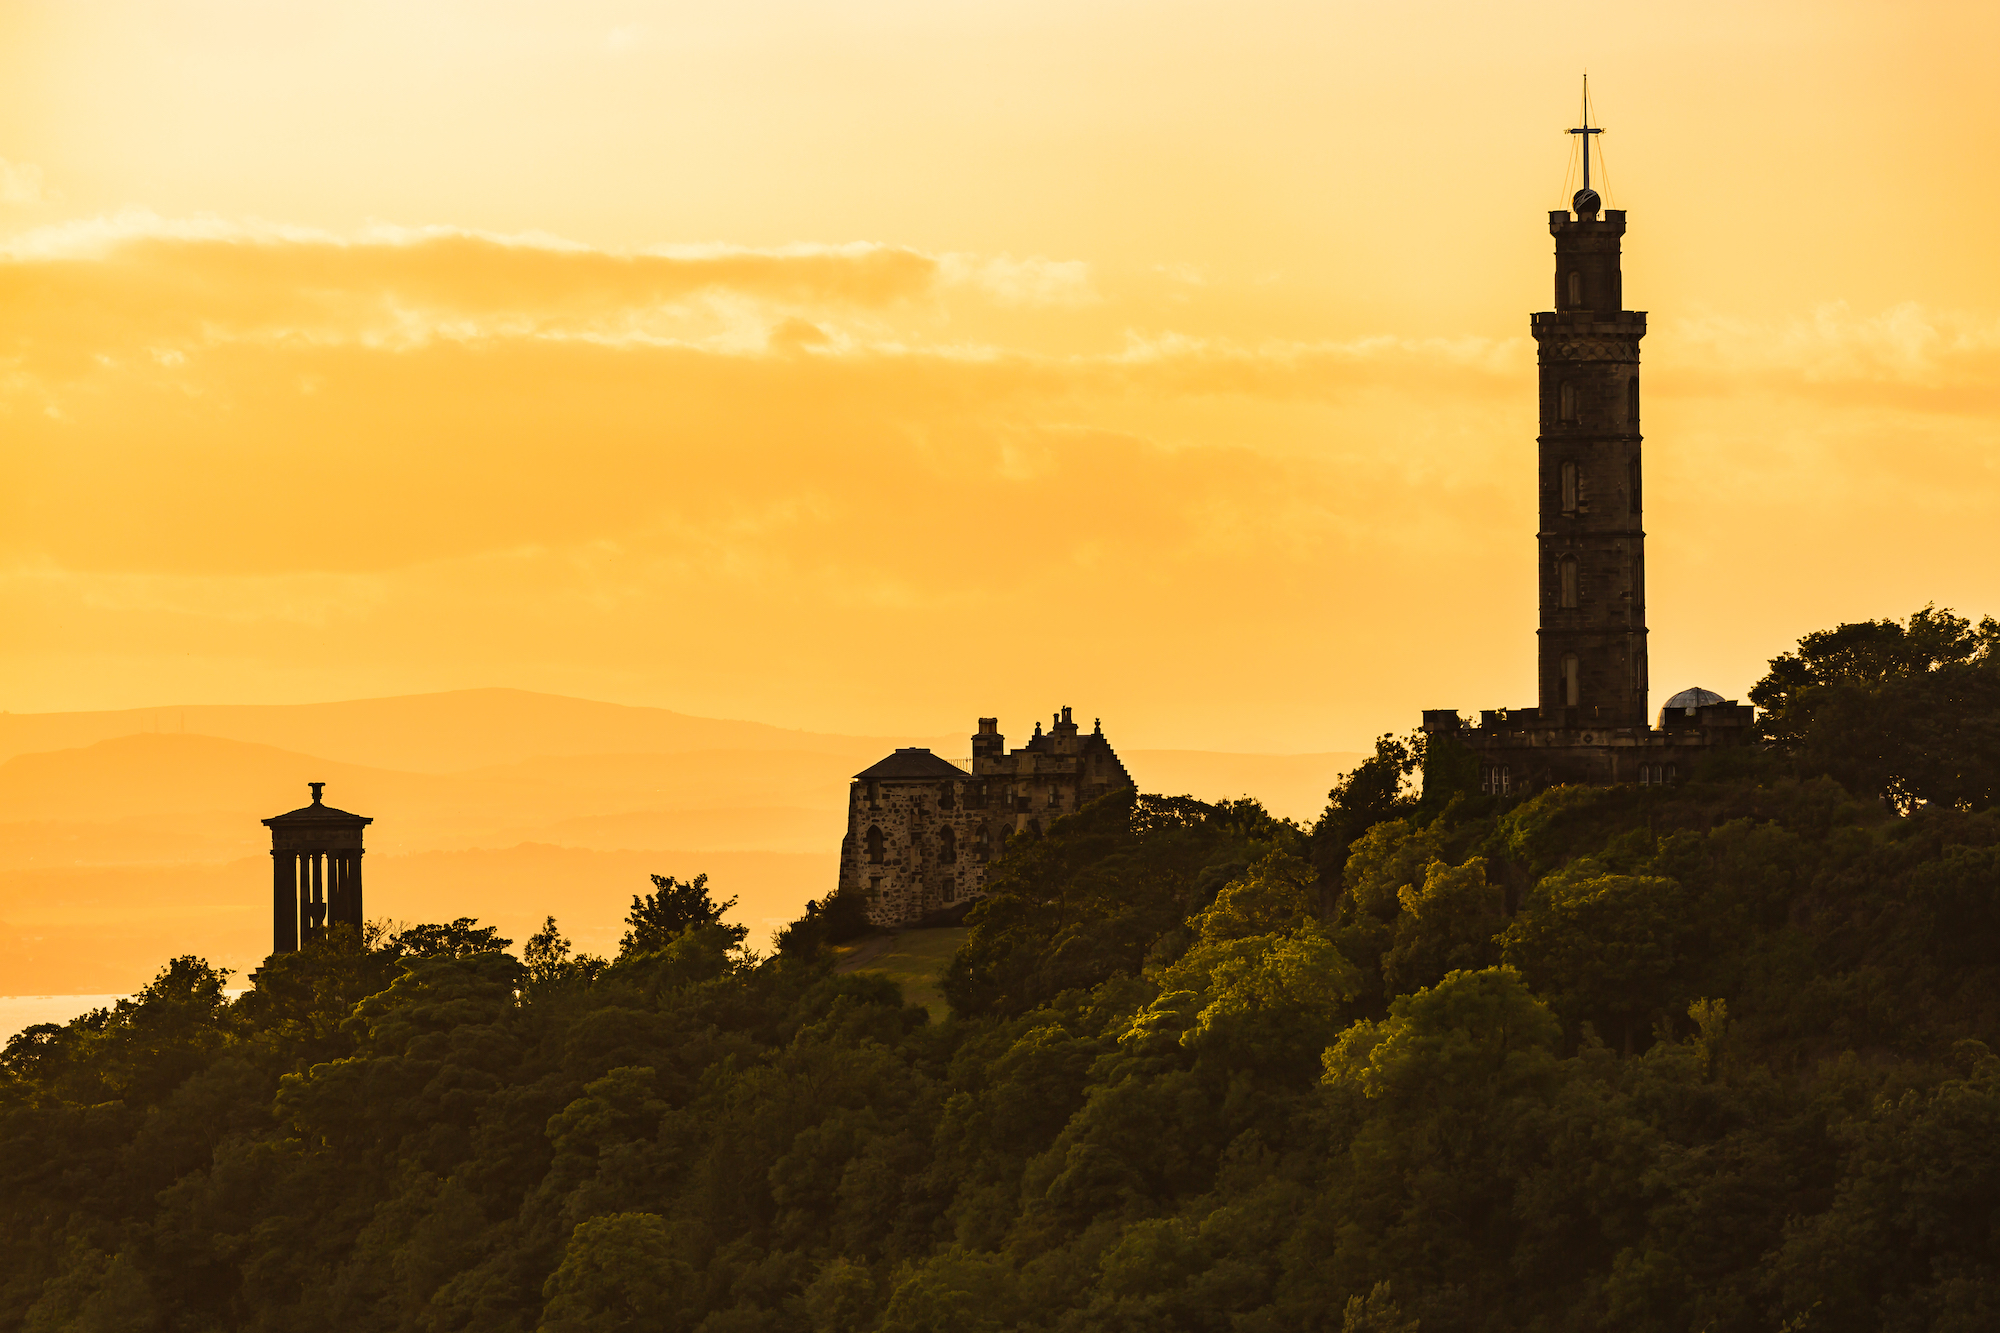 (475) The Dugald Stewart Monument, Gothic Tower of The City Observatory and The Nelson Monument, Calton Hill, Edinburgh, Scotland.jpg